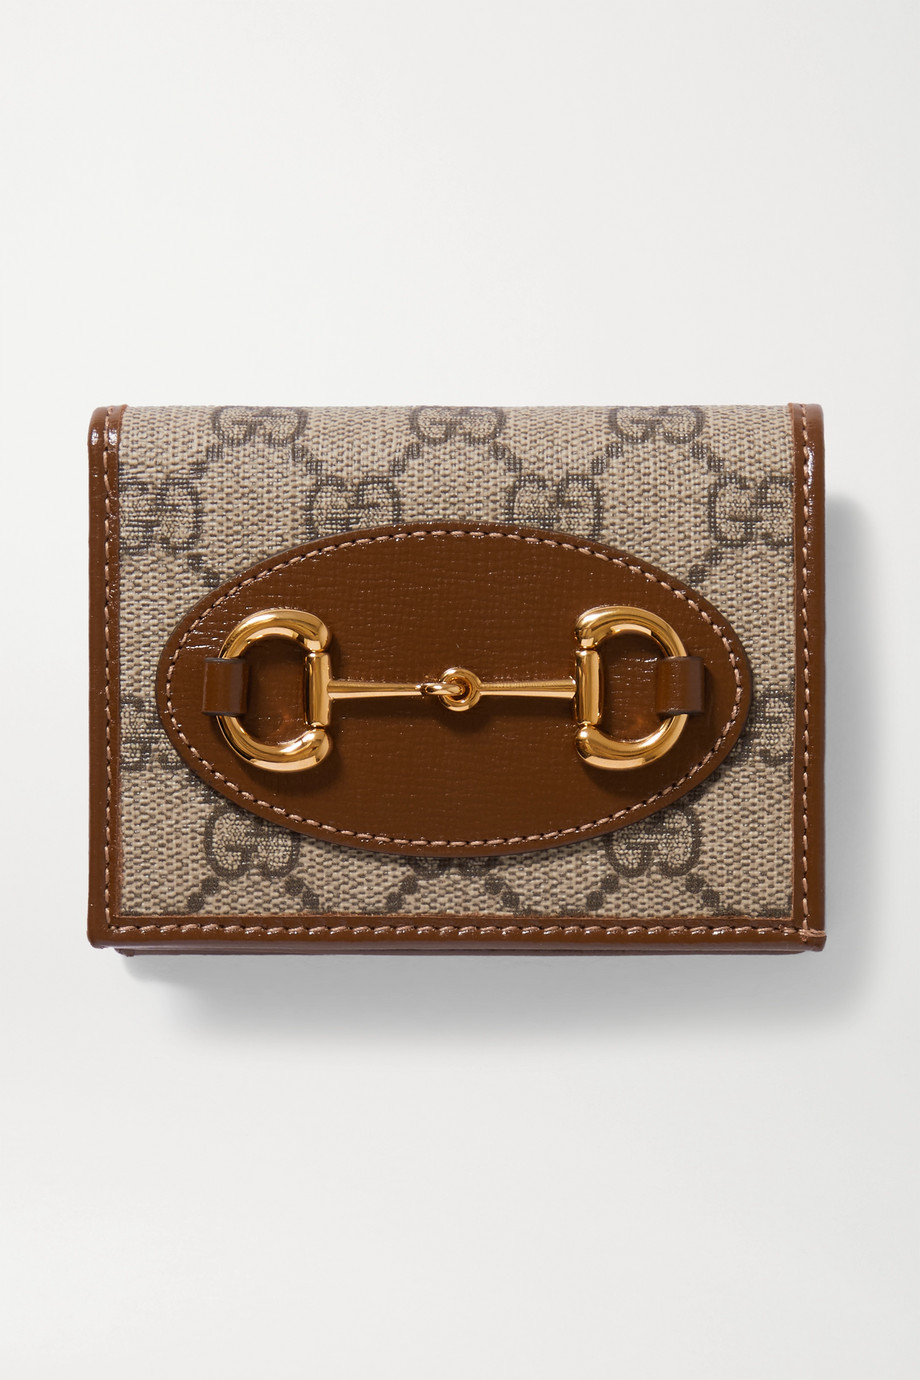 GUCCI 1955 Horsebit leather-trimmed printed coated-canvas wallet